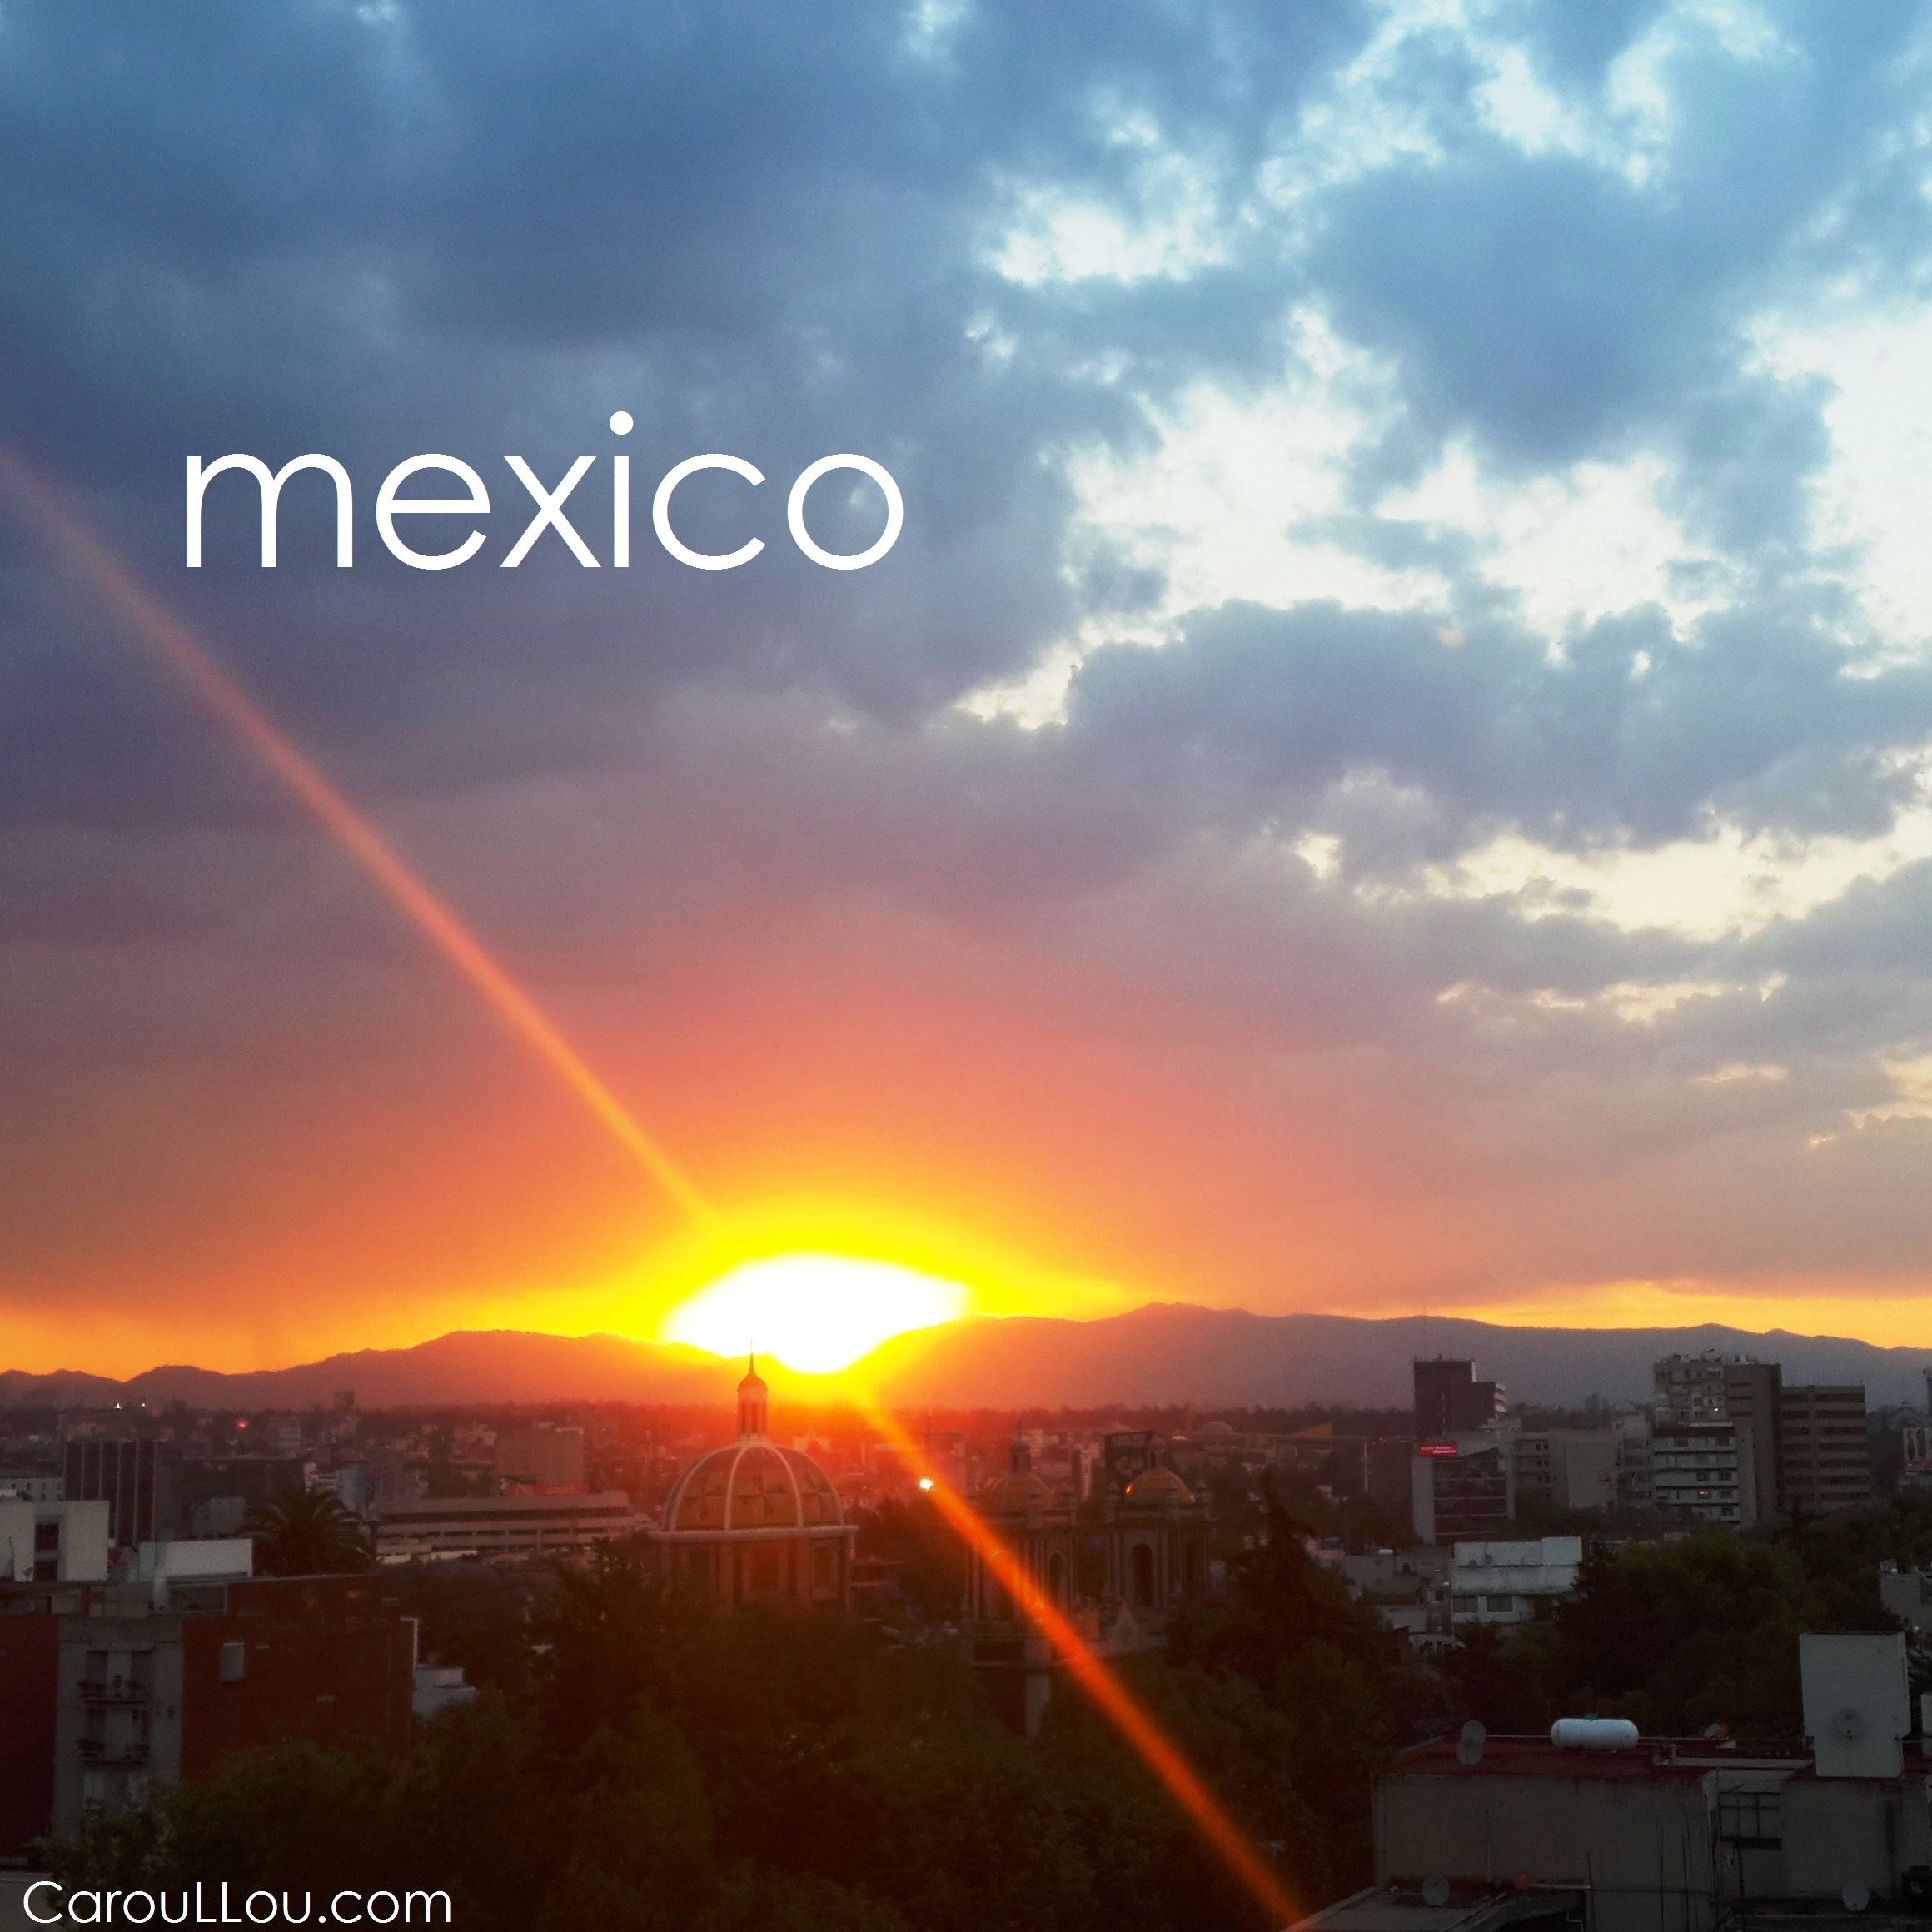 CarouLLou.com Carou LLou in Mexico city sunset apart +-